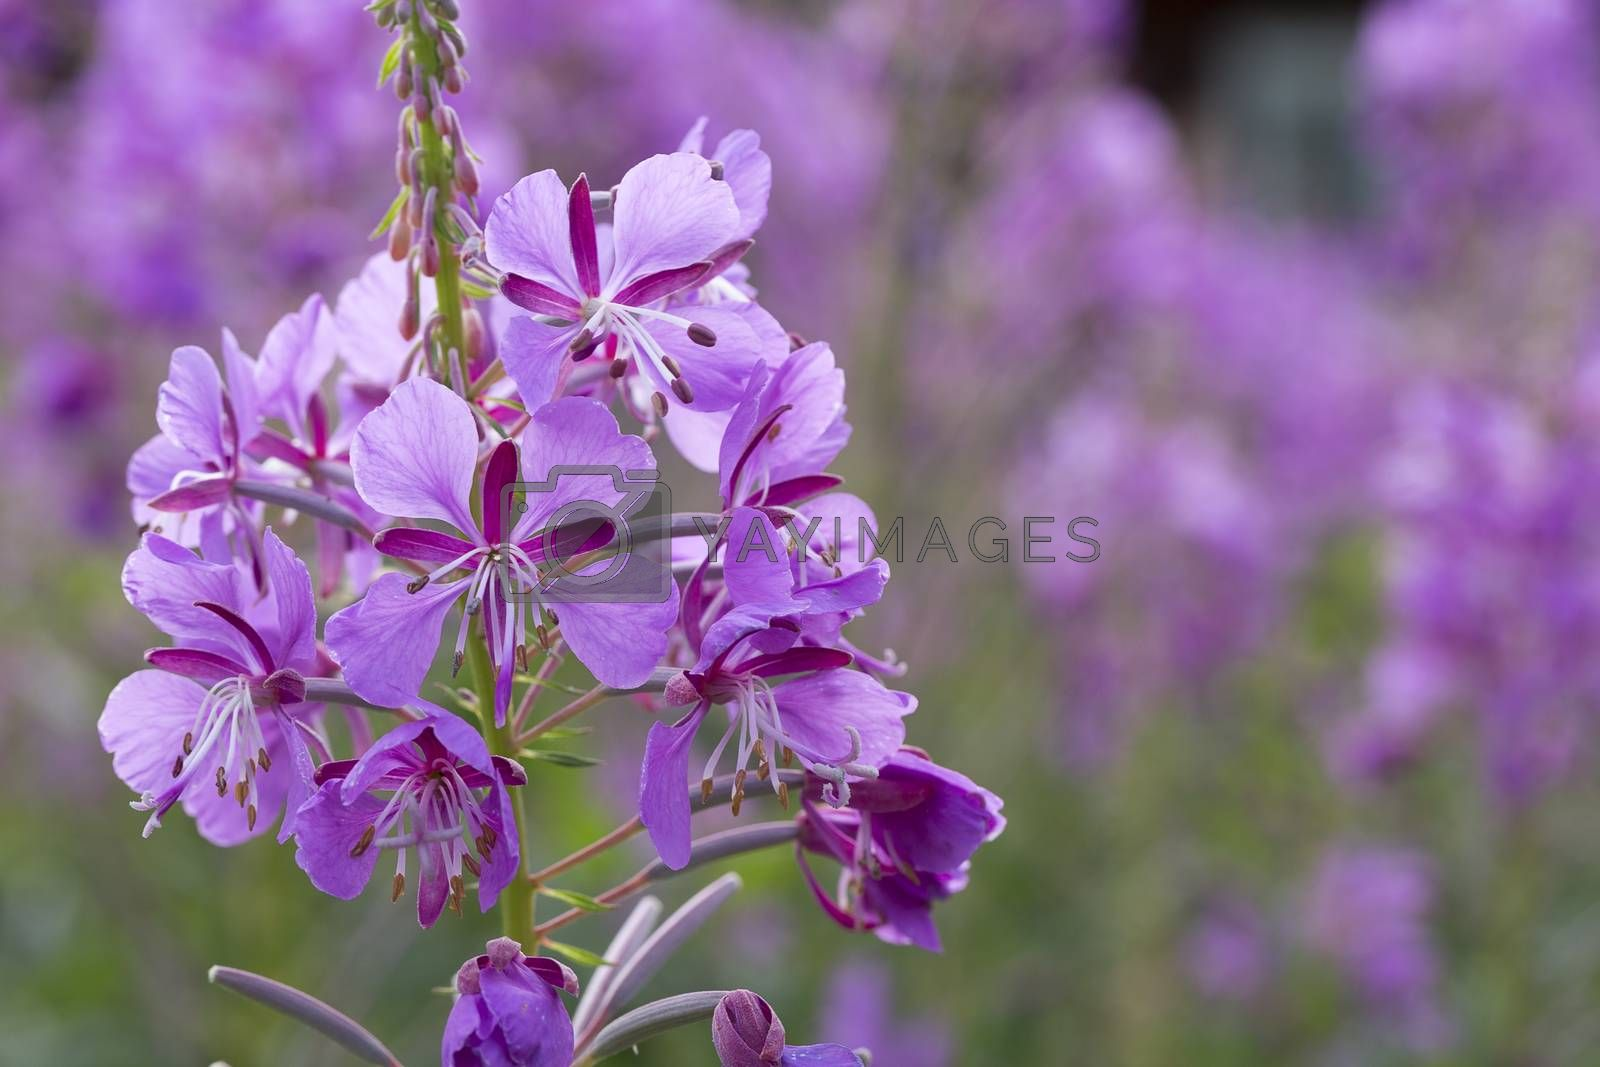 Fireweed Flowers close up.